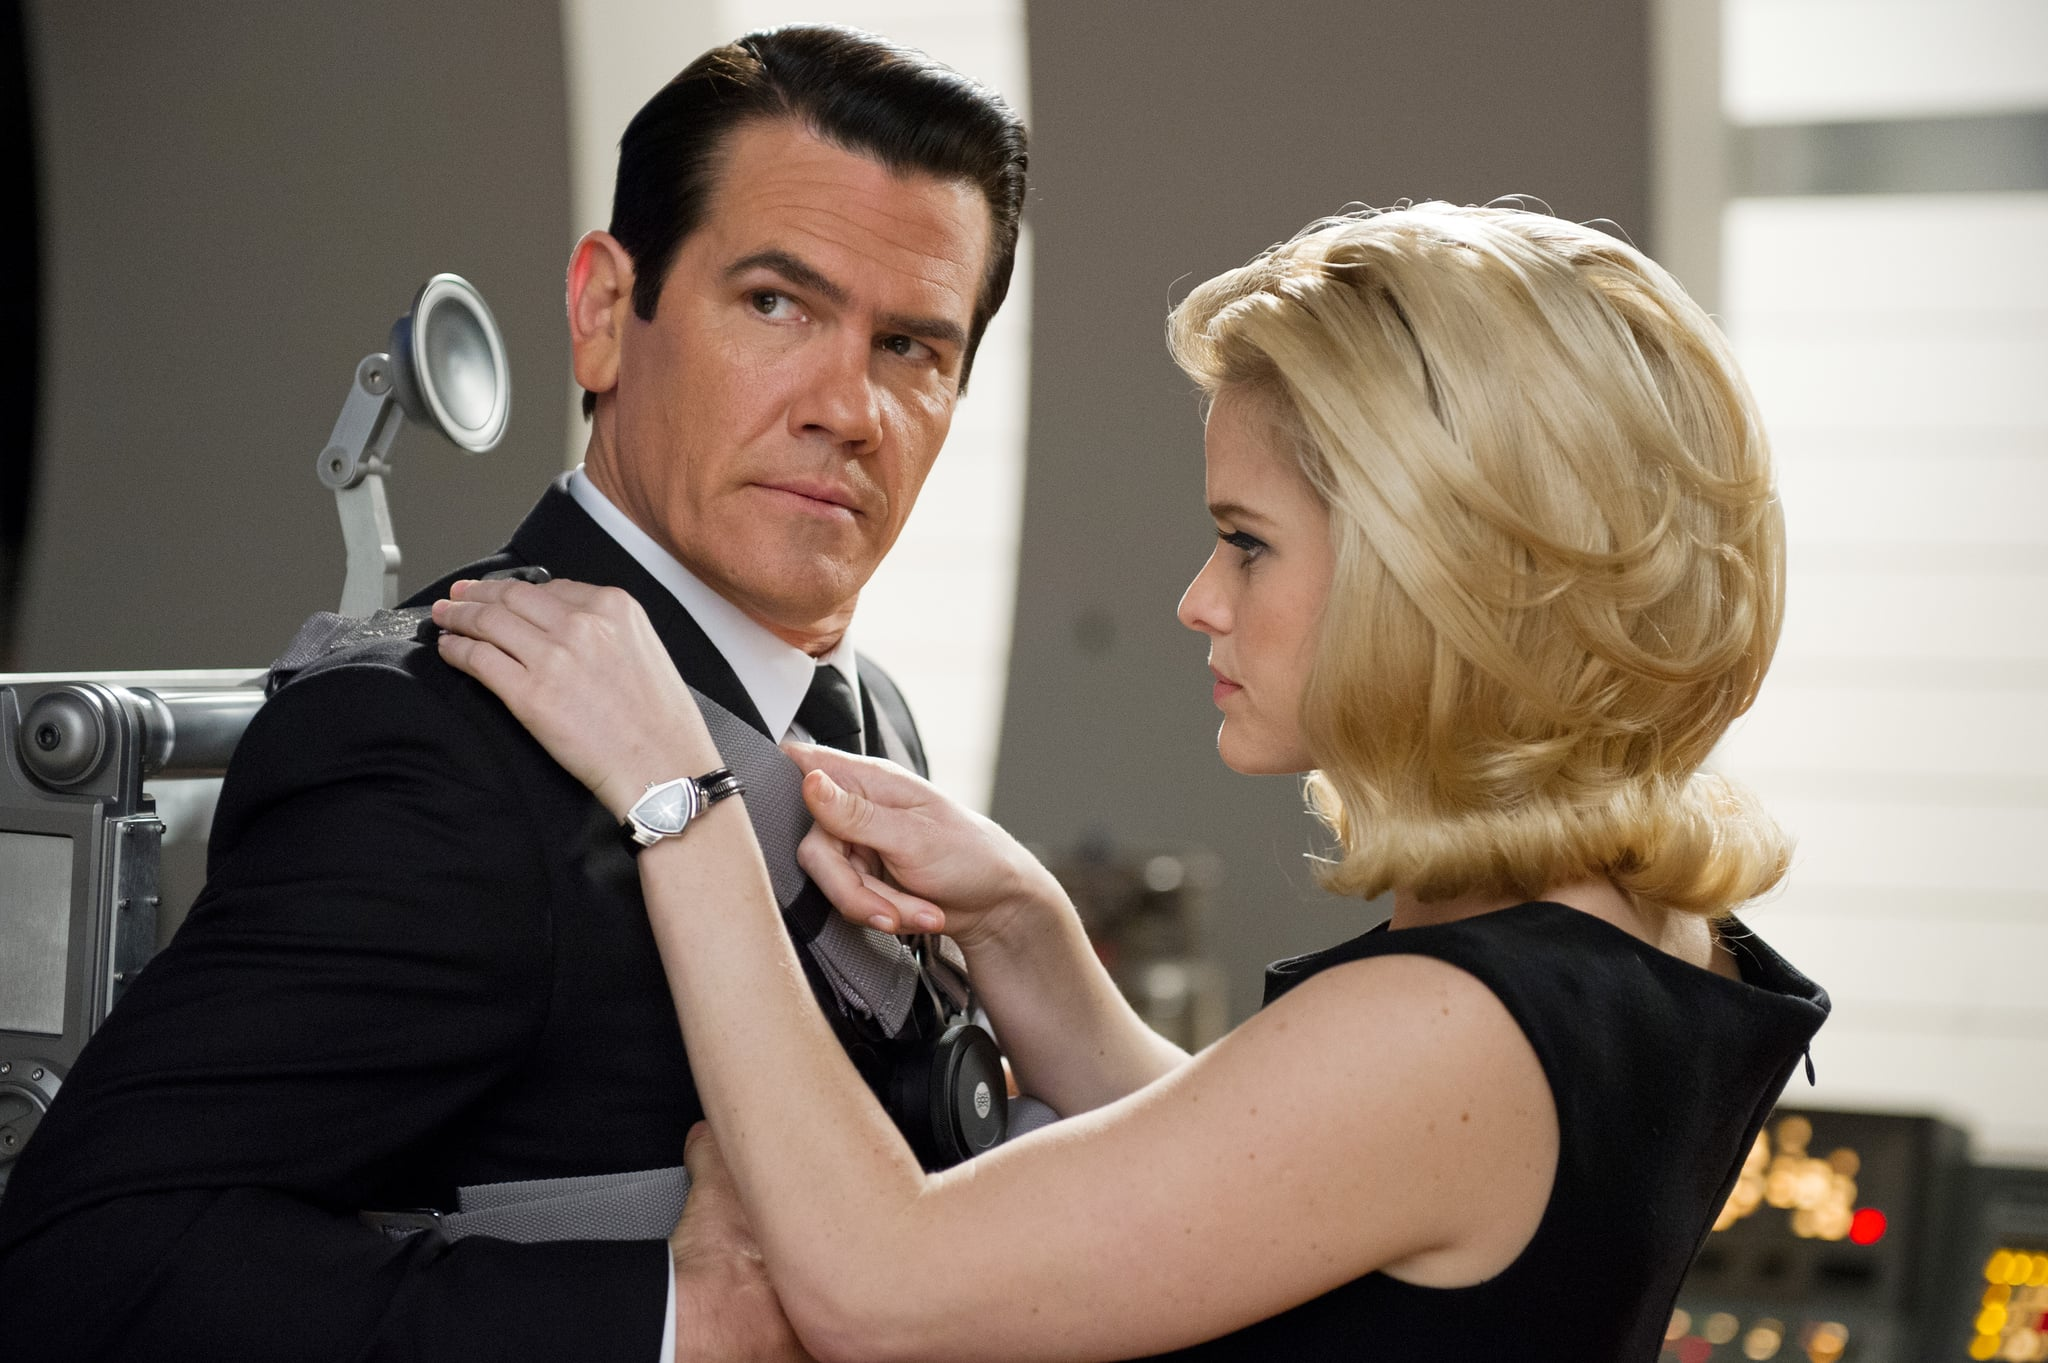 MEN IN BLACK III, from left: Josh Brolin, Alice Eve, 2012. ph: Wilson Webb/Columbia Pictures/courtesy Everett Collection